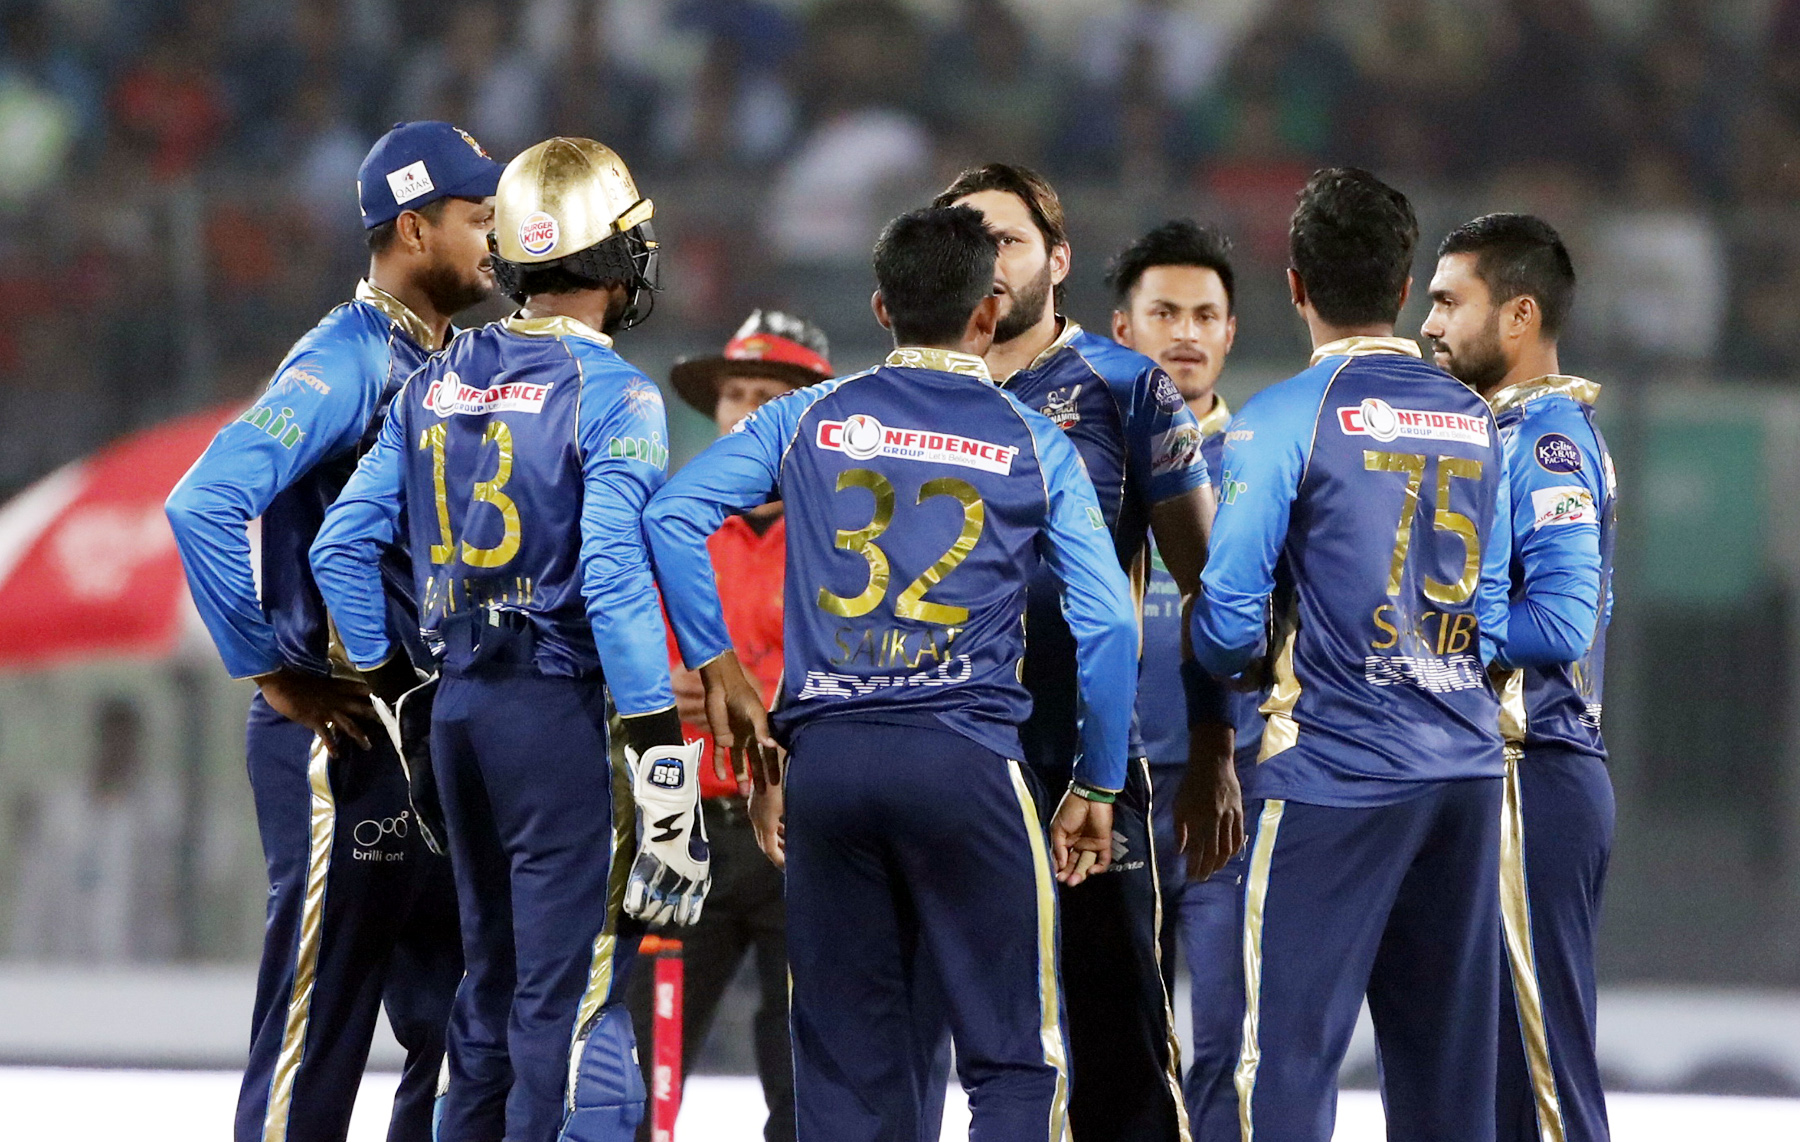 Players of Dhaka Dynamites celebrate after dismissal of a wicket of Rangpur Riders during the match of the AKS Bangladesh Premier League (BPL) Twenty20 Cricket between Dhaka Dynamites and Rangpur Riders at the Sher-e-Bangla National Cricket Stadium in the city's Mirpur on Tuesday.